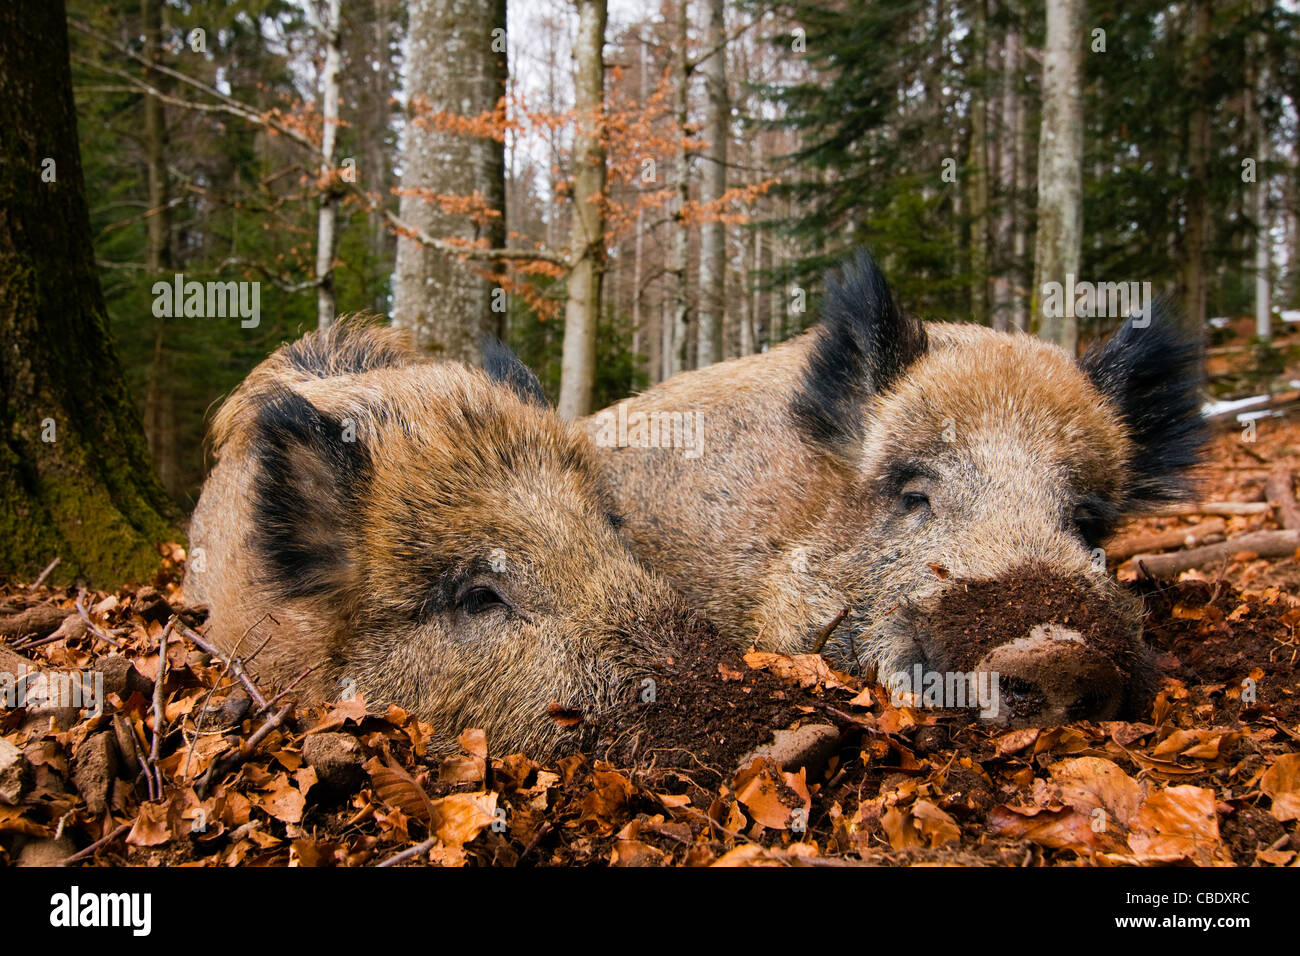 Two wild boars laying in forest. - Stock Image